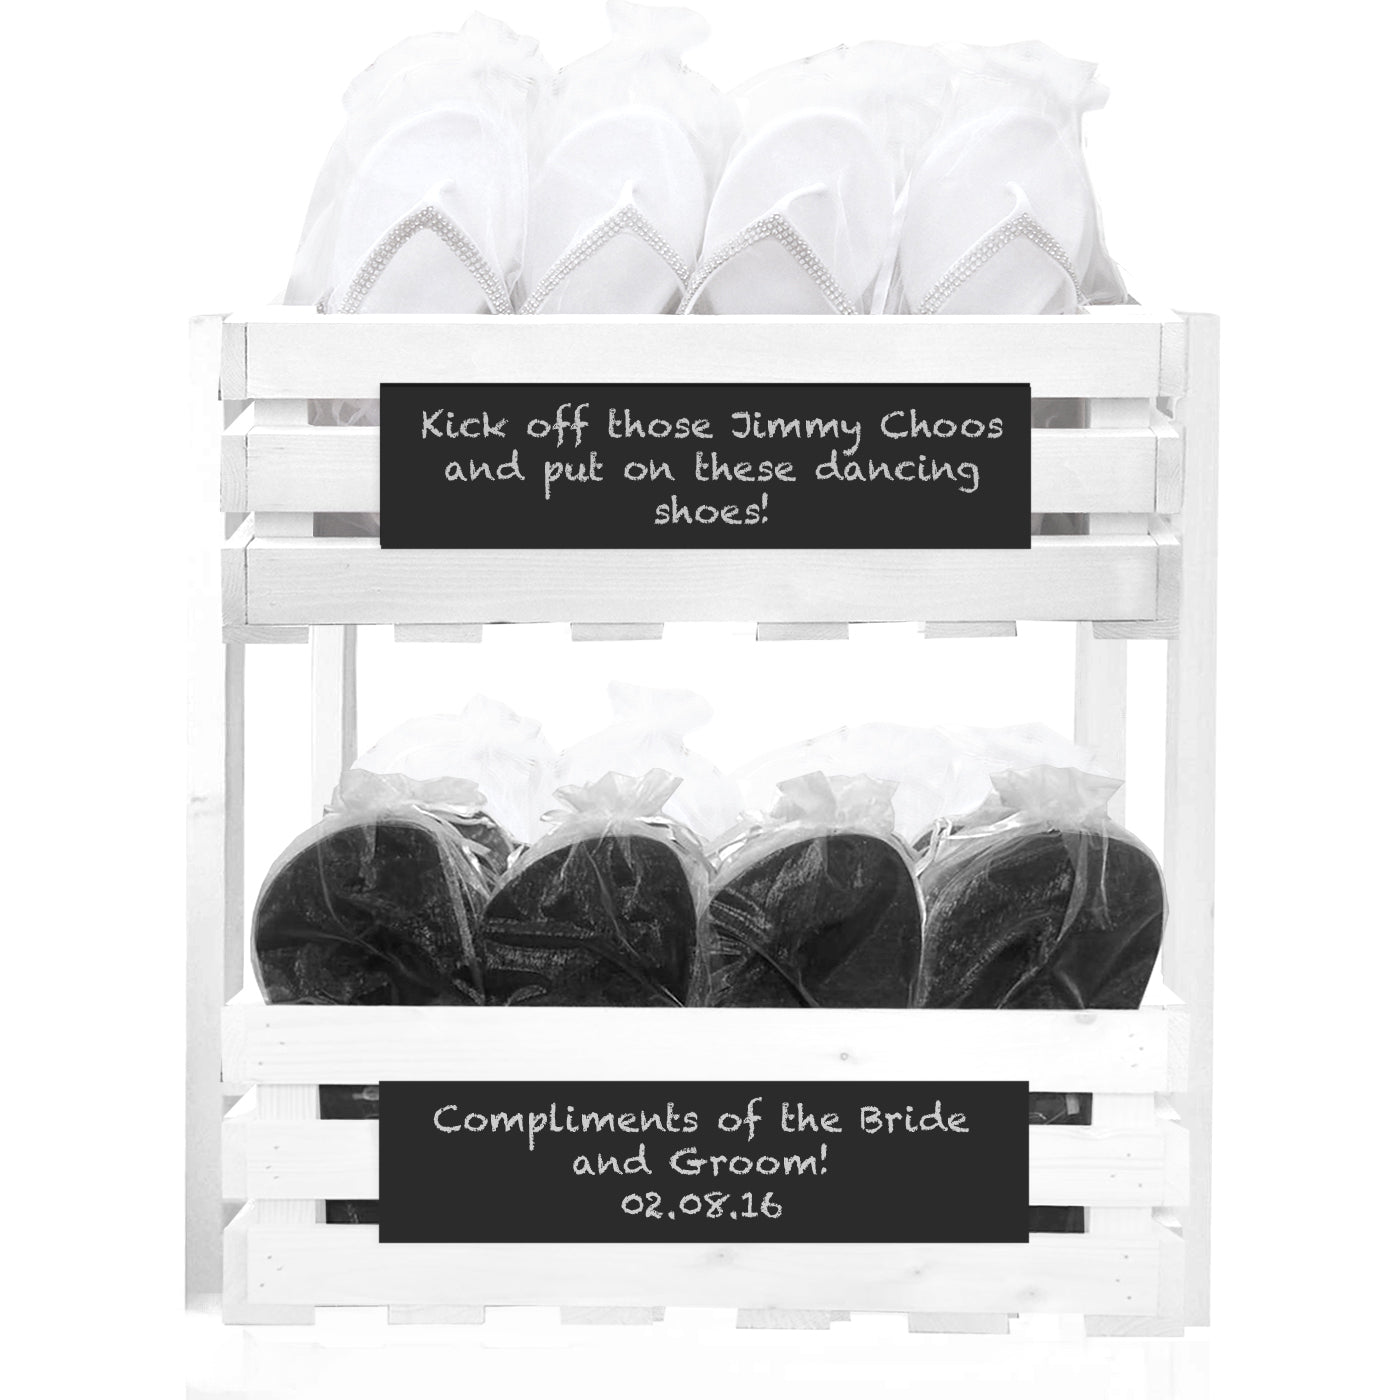 30 x Diamante flip flops and 20 x Mens flip flops in a chalkboard crate tower